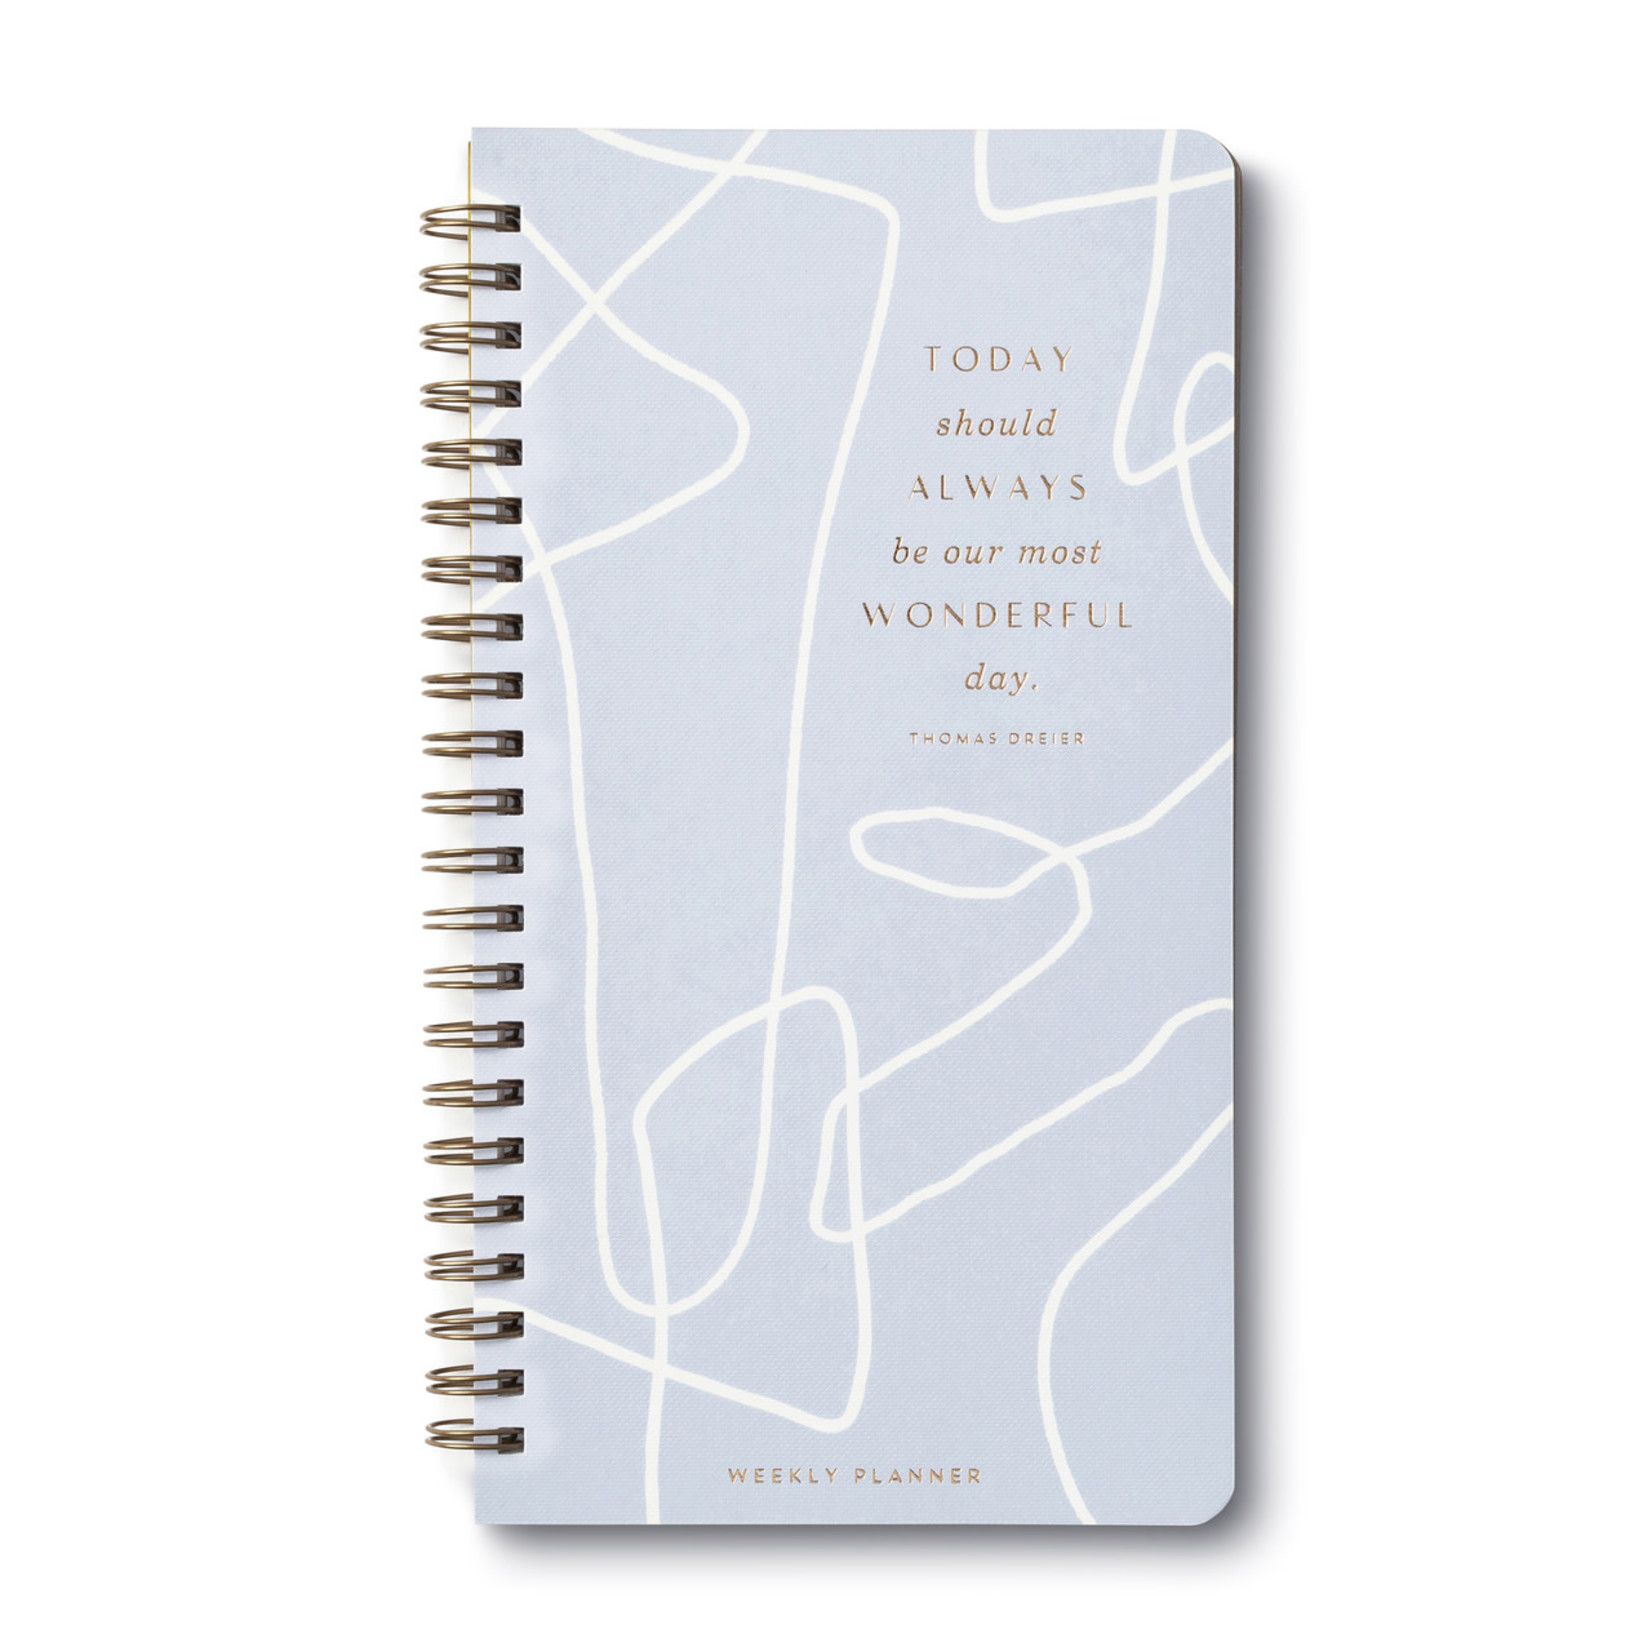 COMPENDIUM WEEKLY PLANNER - TODAY SHOULD ALWAYS BE OUR MOST WONDERFUL DAY